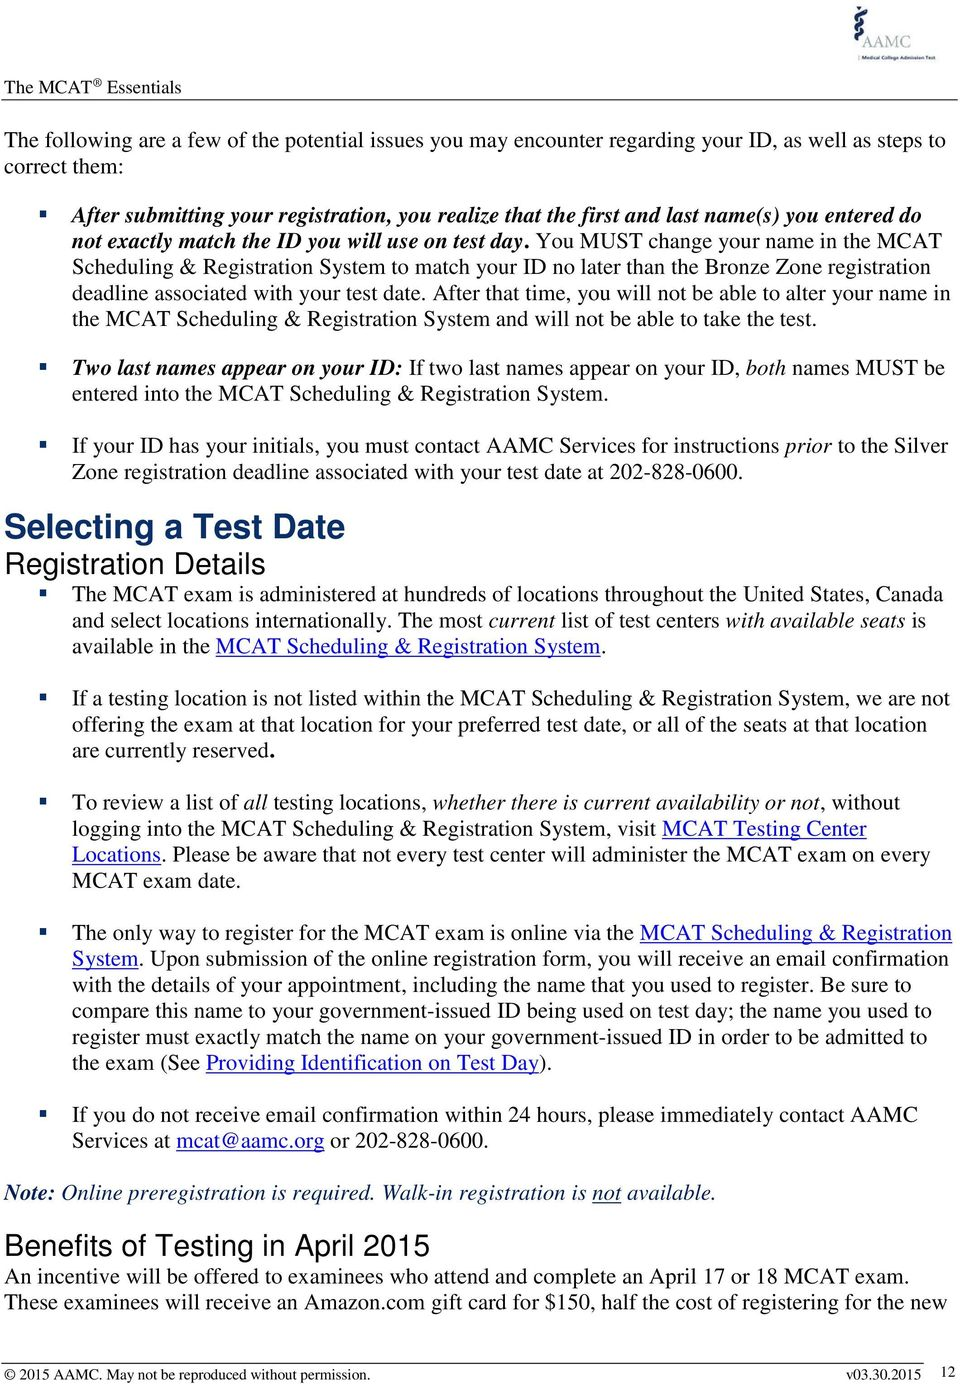 You MUST change your name in the MCAT Scheduling & Registration System to match your ID no later than the Bronze Zone registration deadline associated with your test date.